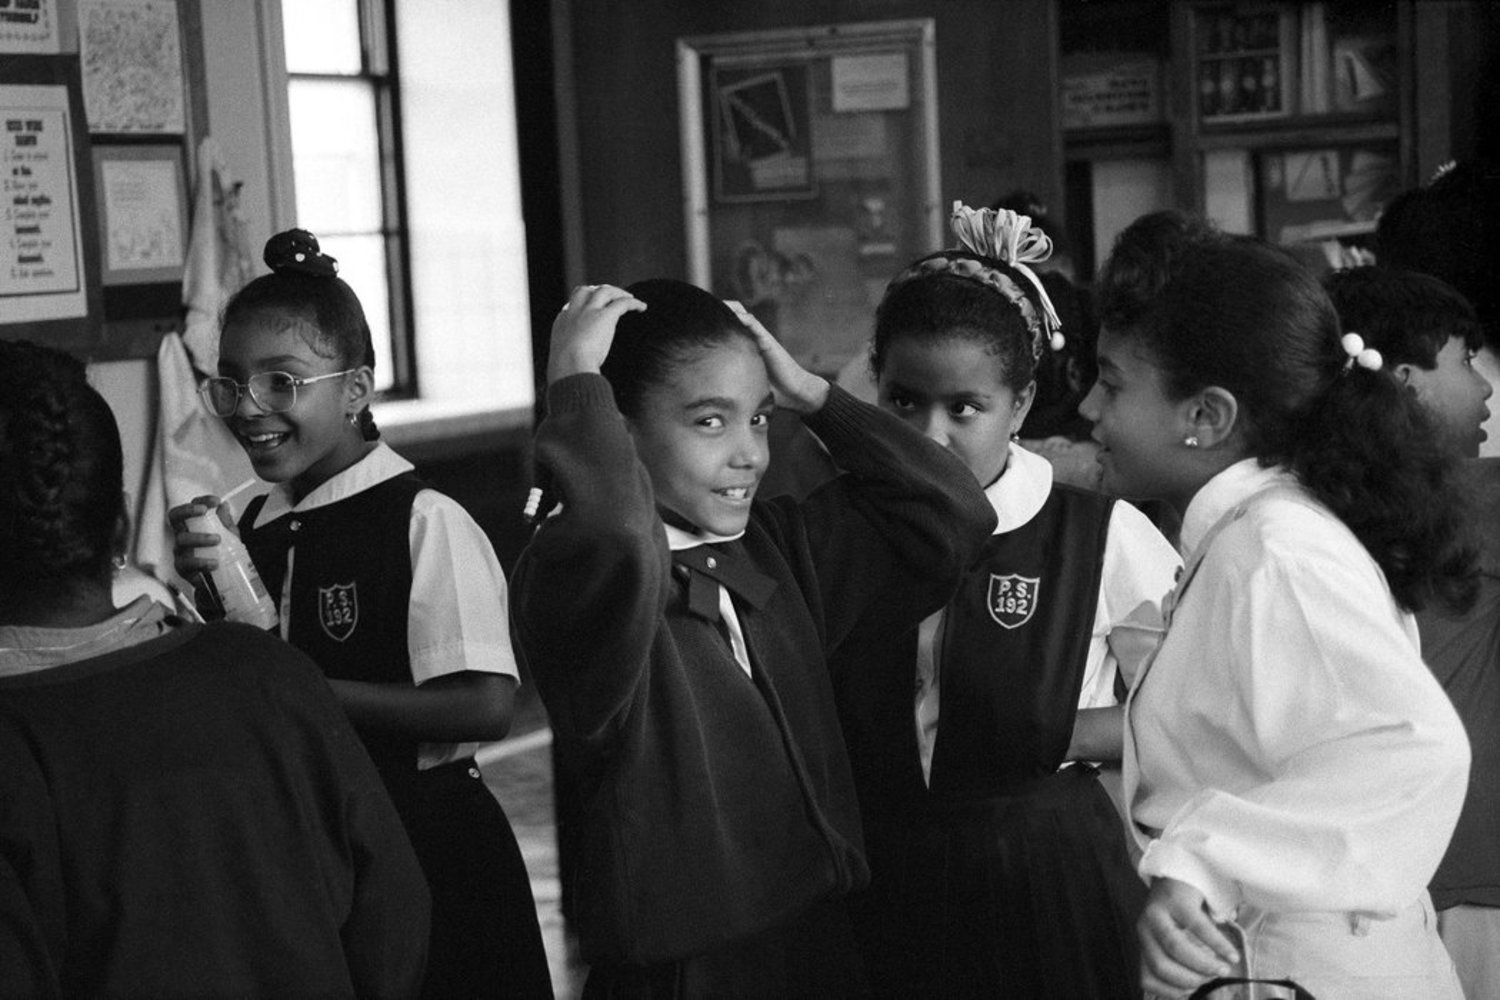 1990s - September 1990: At Public School 192 in Harlem, some students wore uniforms, which were optional.